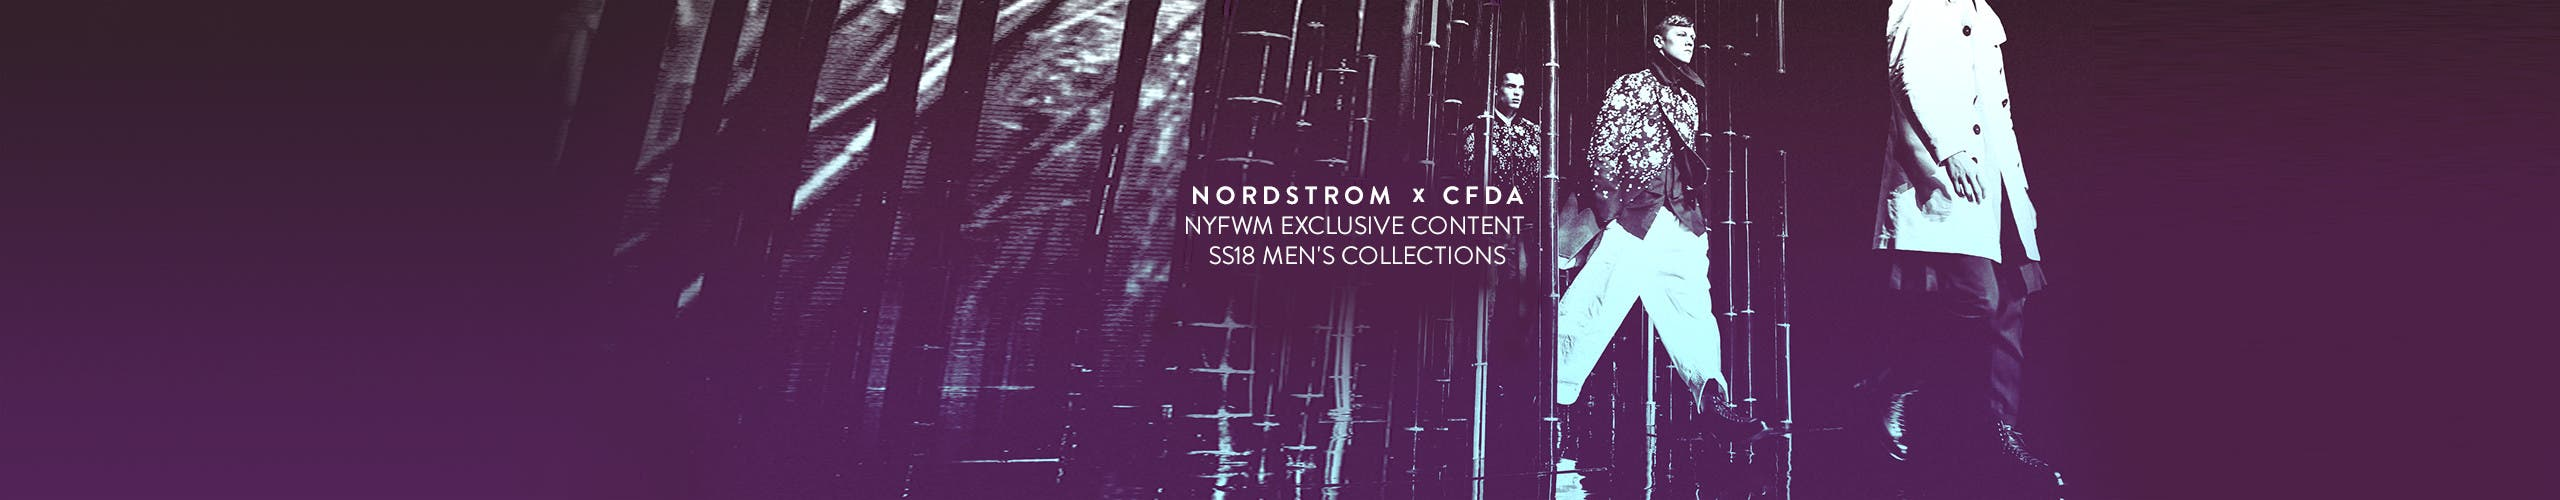 Nordstrom and CFDA, New York Fashion Week Men's Exclusives.